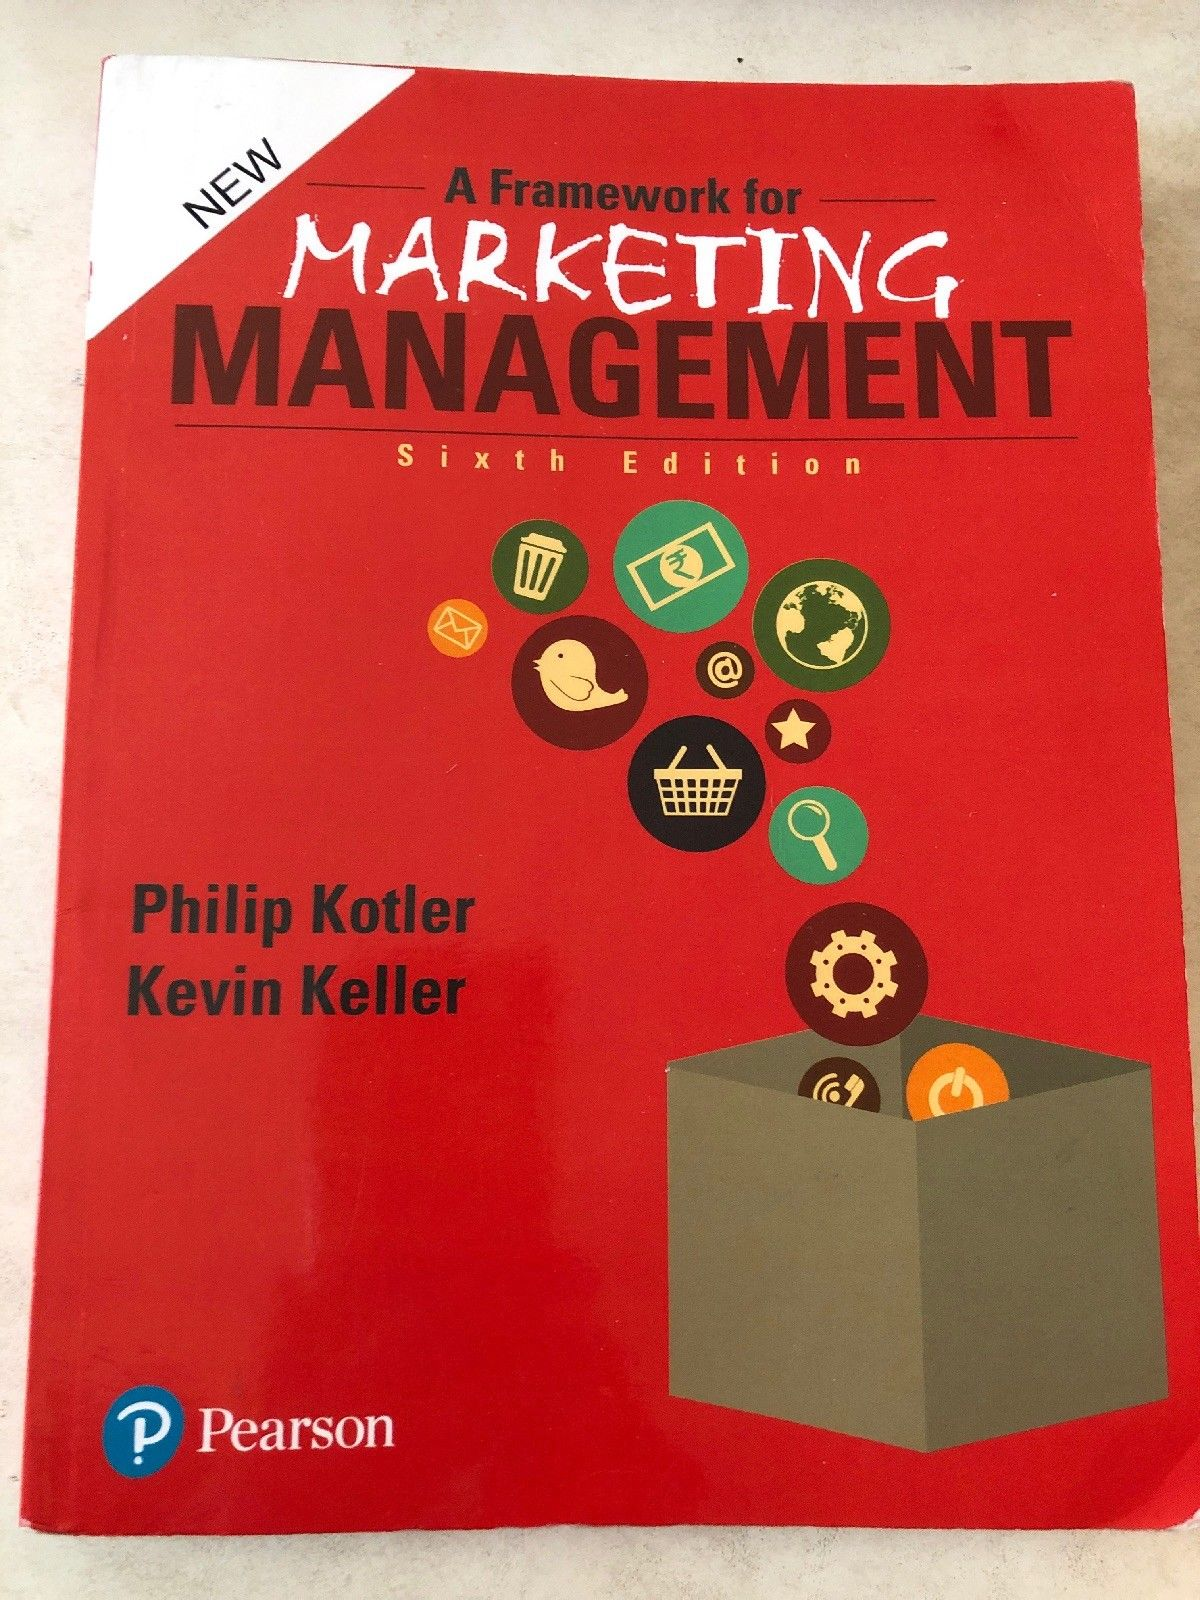 A Framework For Marketing Management 6th Edition By Philip Kotler